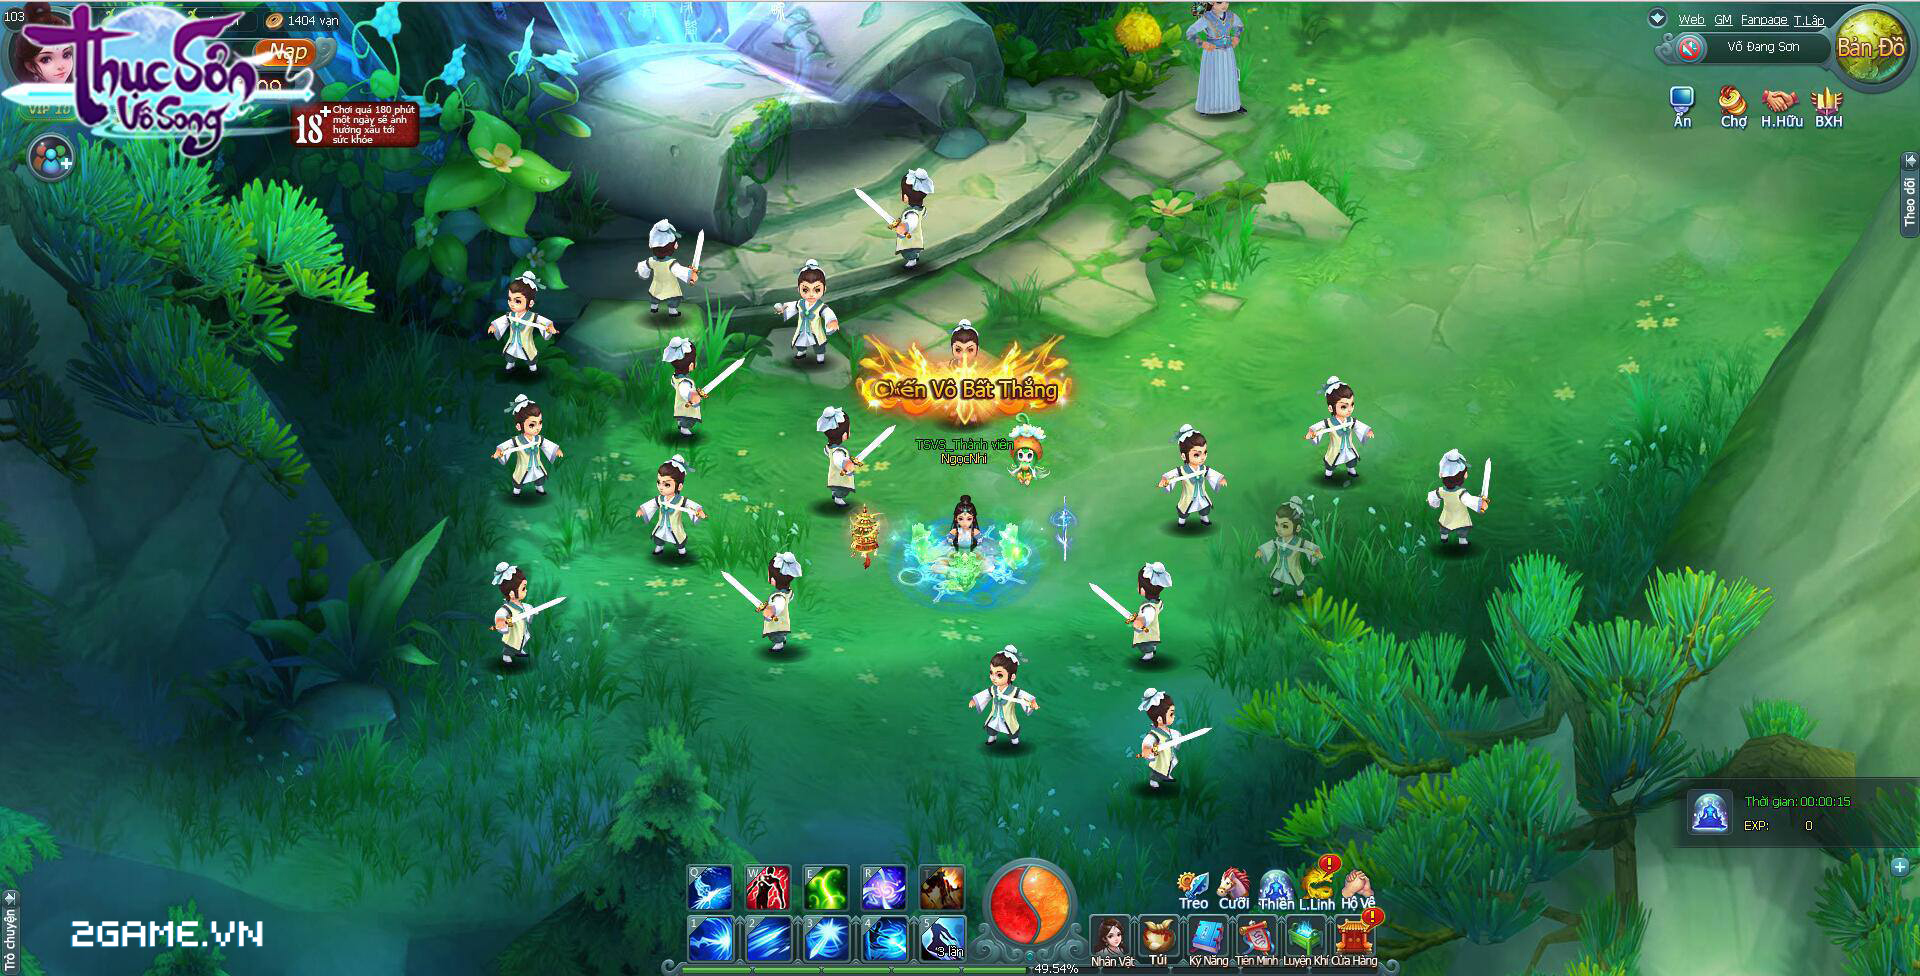 2game_webgame_thuc_son_vo_song_vng_1.jpg (1920×976)